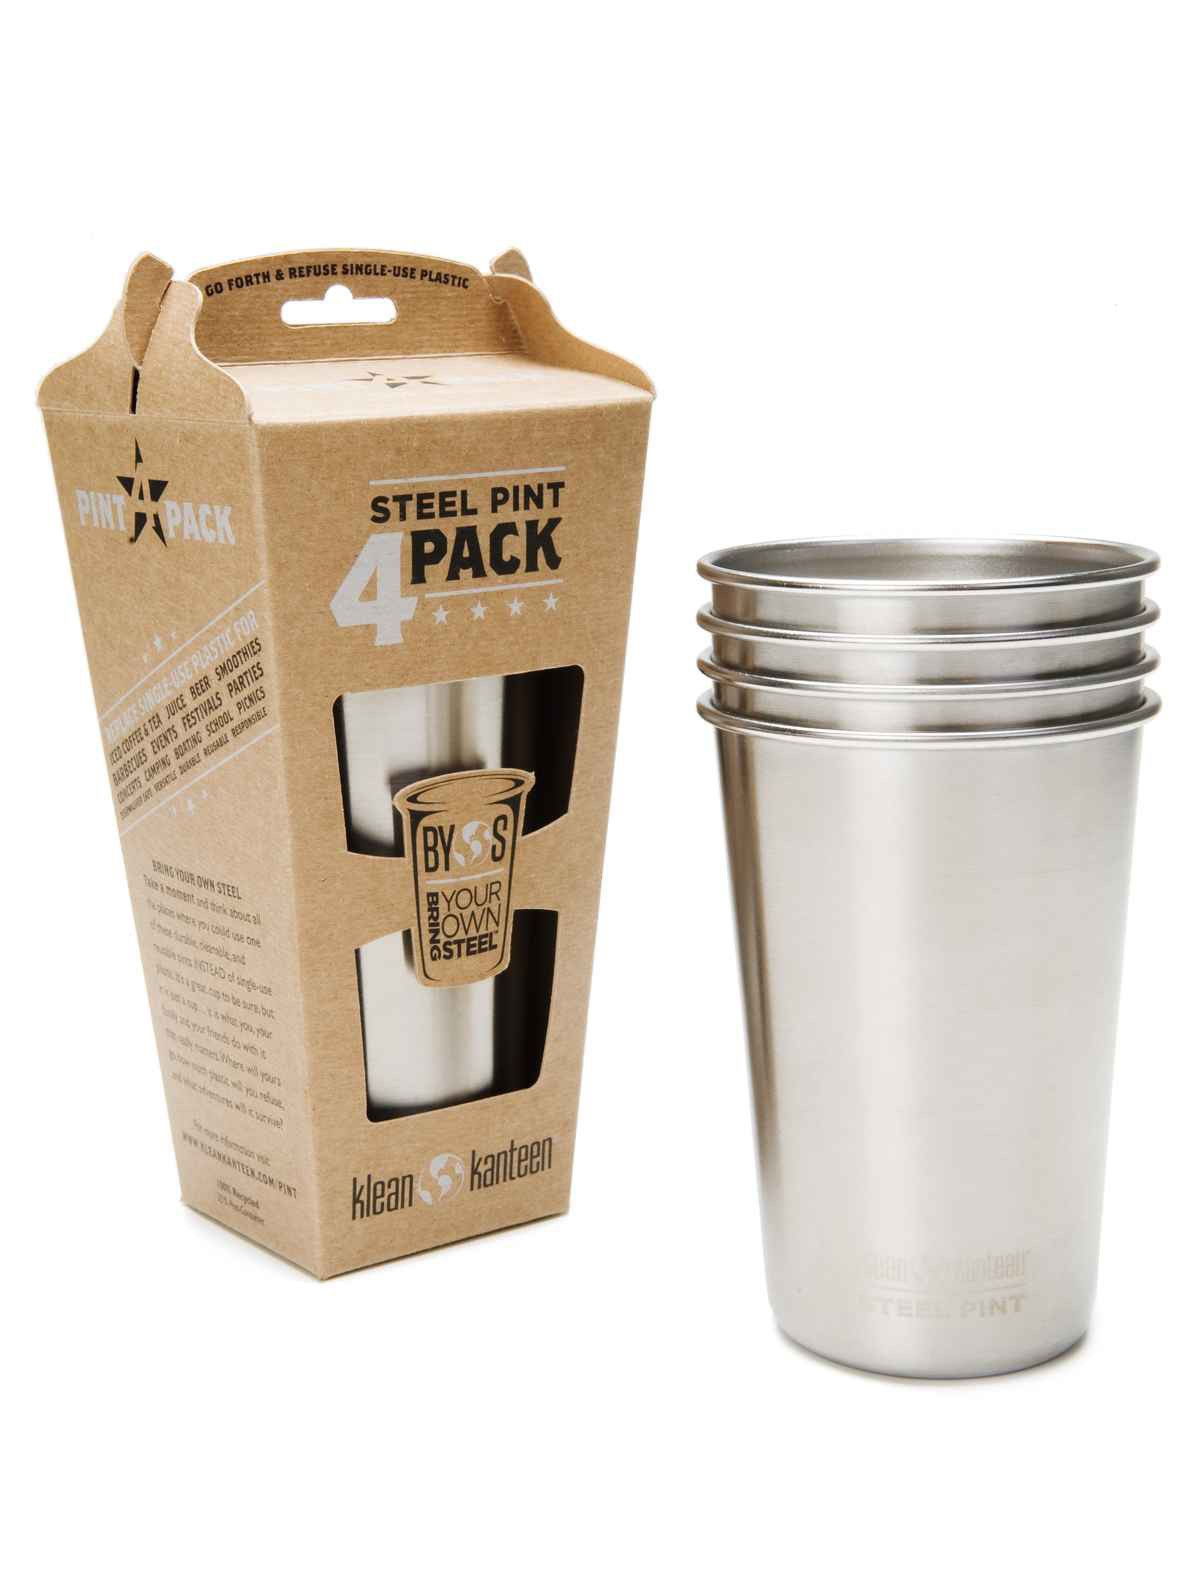 Klean Kanteen Steel Pint 4 Pack